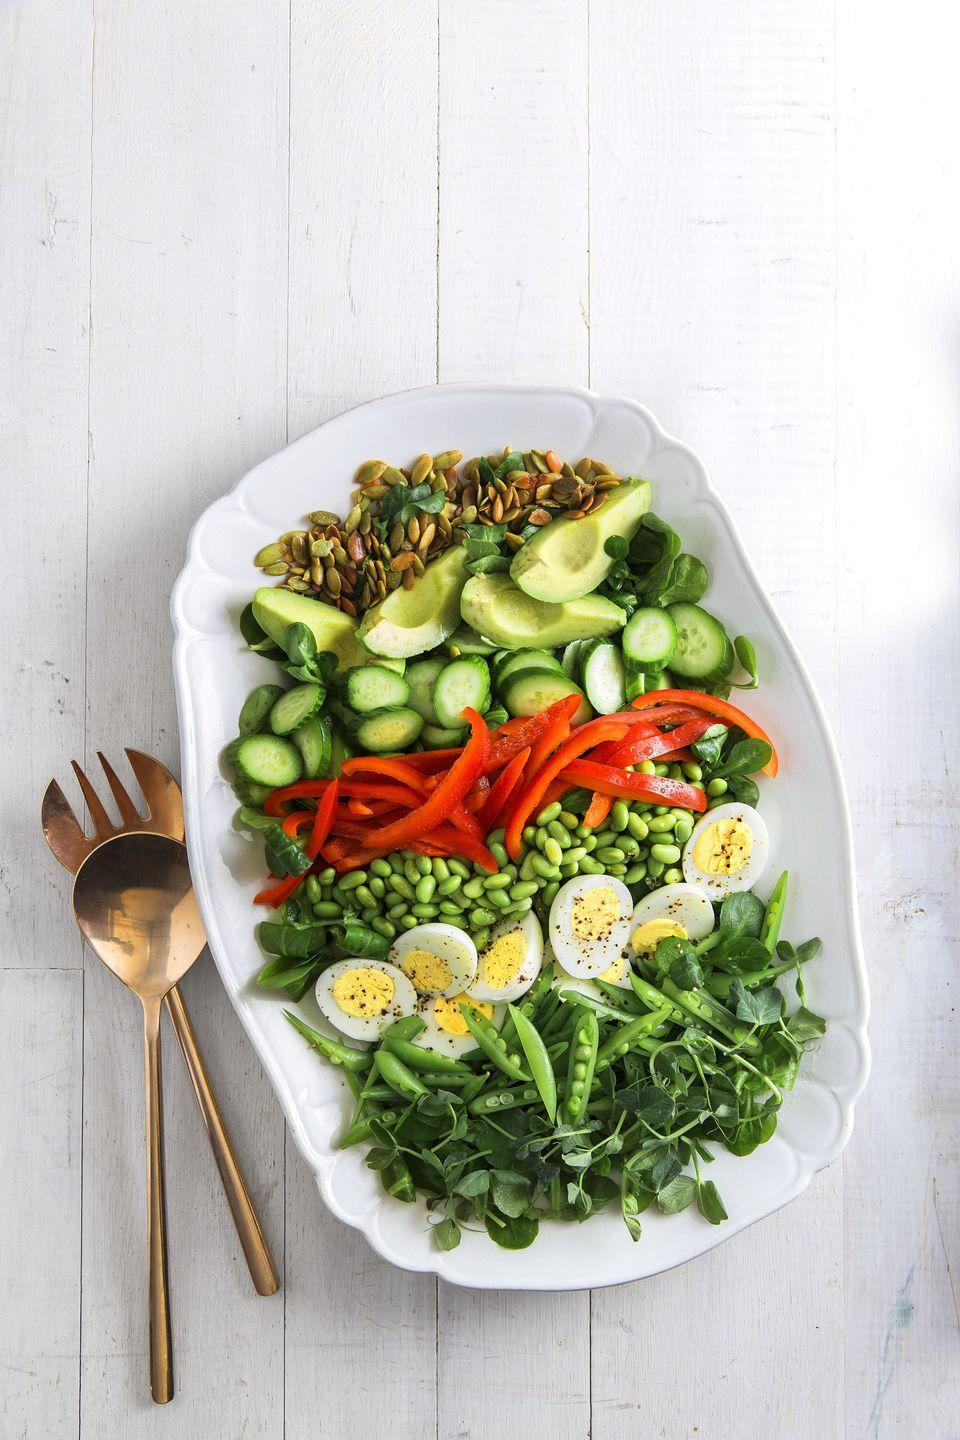 "<p>Get your daily dose of veggies with this fresh and colorful salad.</p><p><a href=""https://www.countryliving.com/food-drinks/recipes/a35067/green-machine-power-salad/"" rel=""nofollow noopener"" target=""_blank"" data-ylk=""slk:Get the recipe."" class=""link rapid-noclick-resp""><strong>Get the recipe.</strong></a></p>"